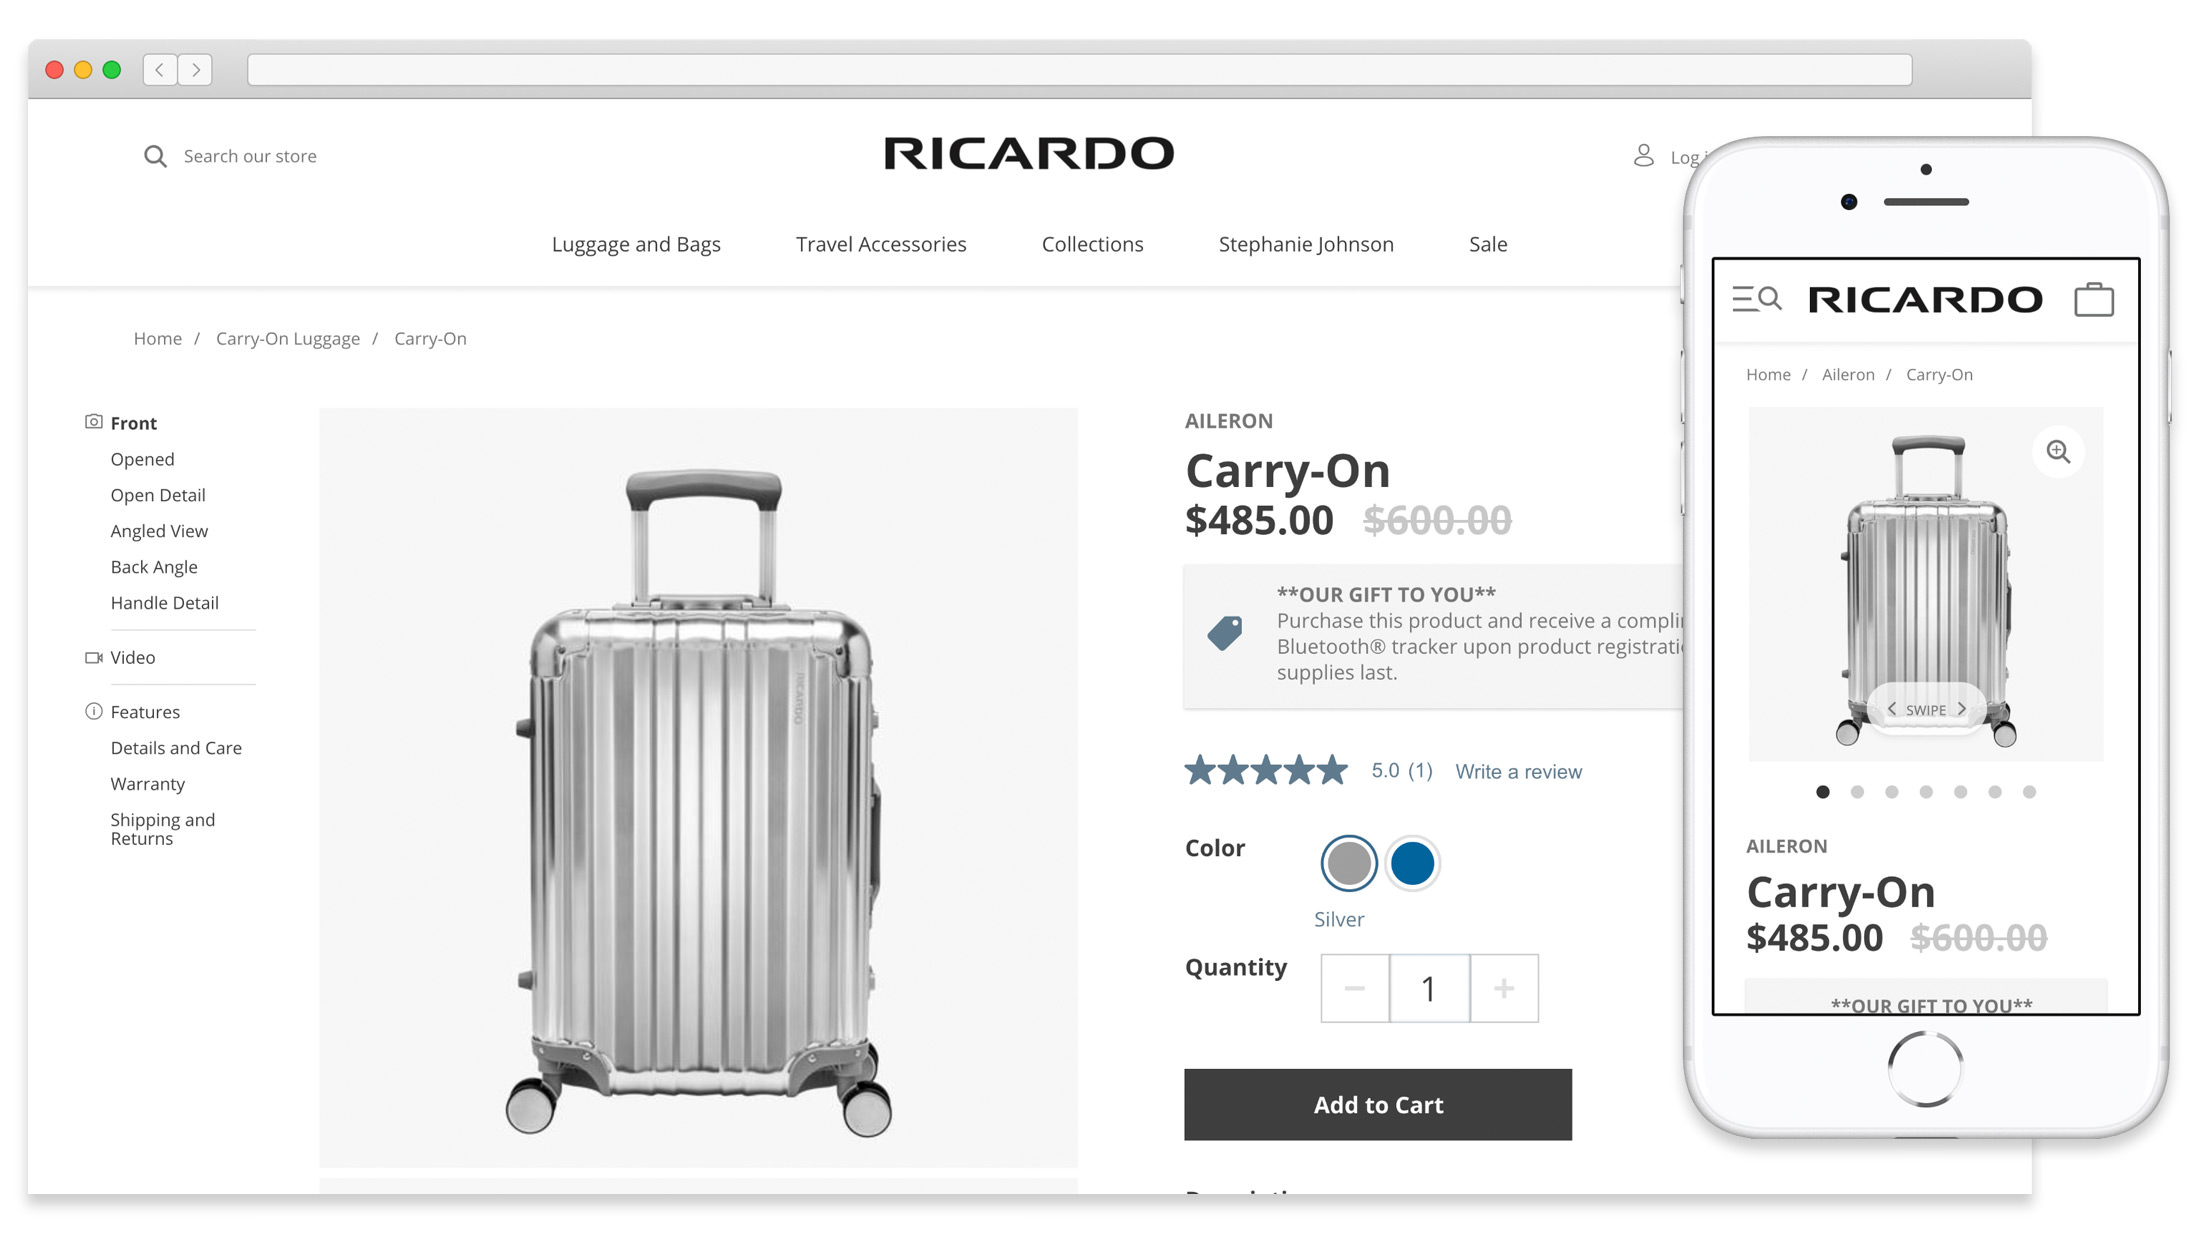 A mockup of the Ricardo Beverly Hills website on desktop and mobile sizes.